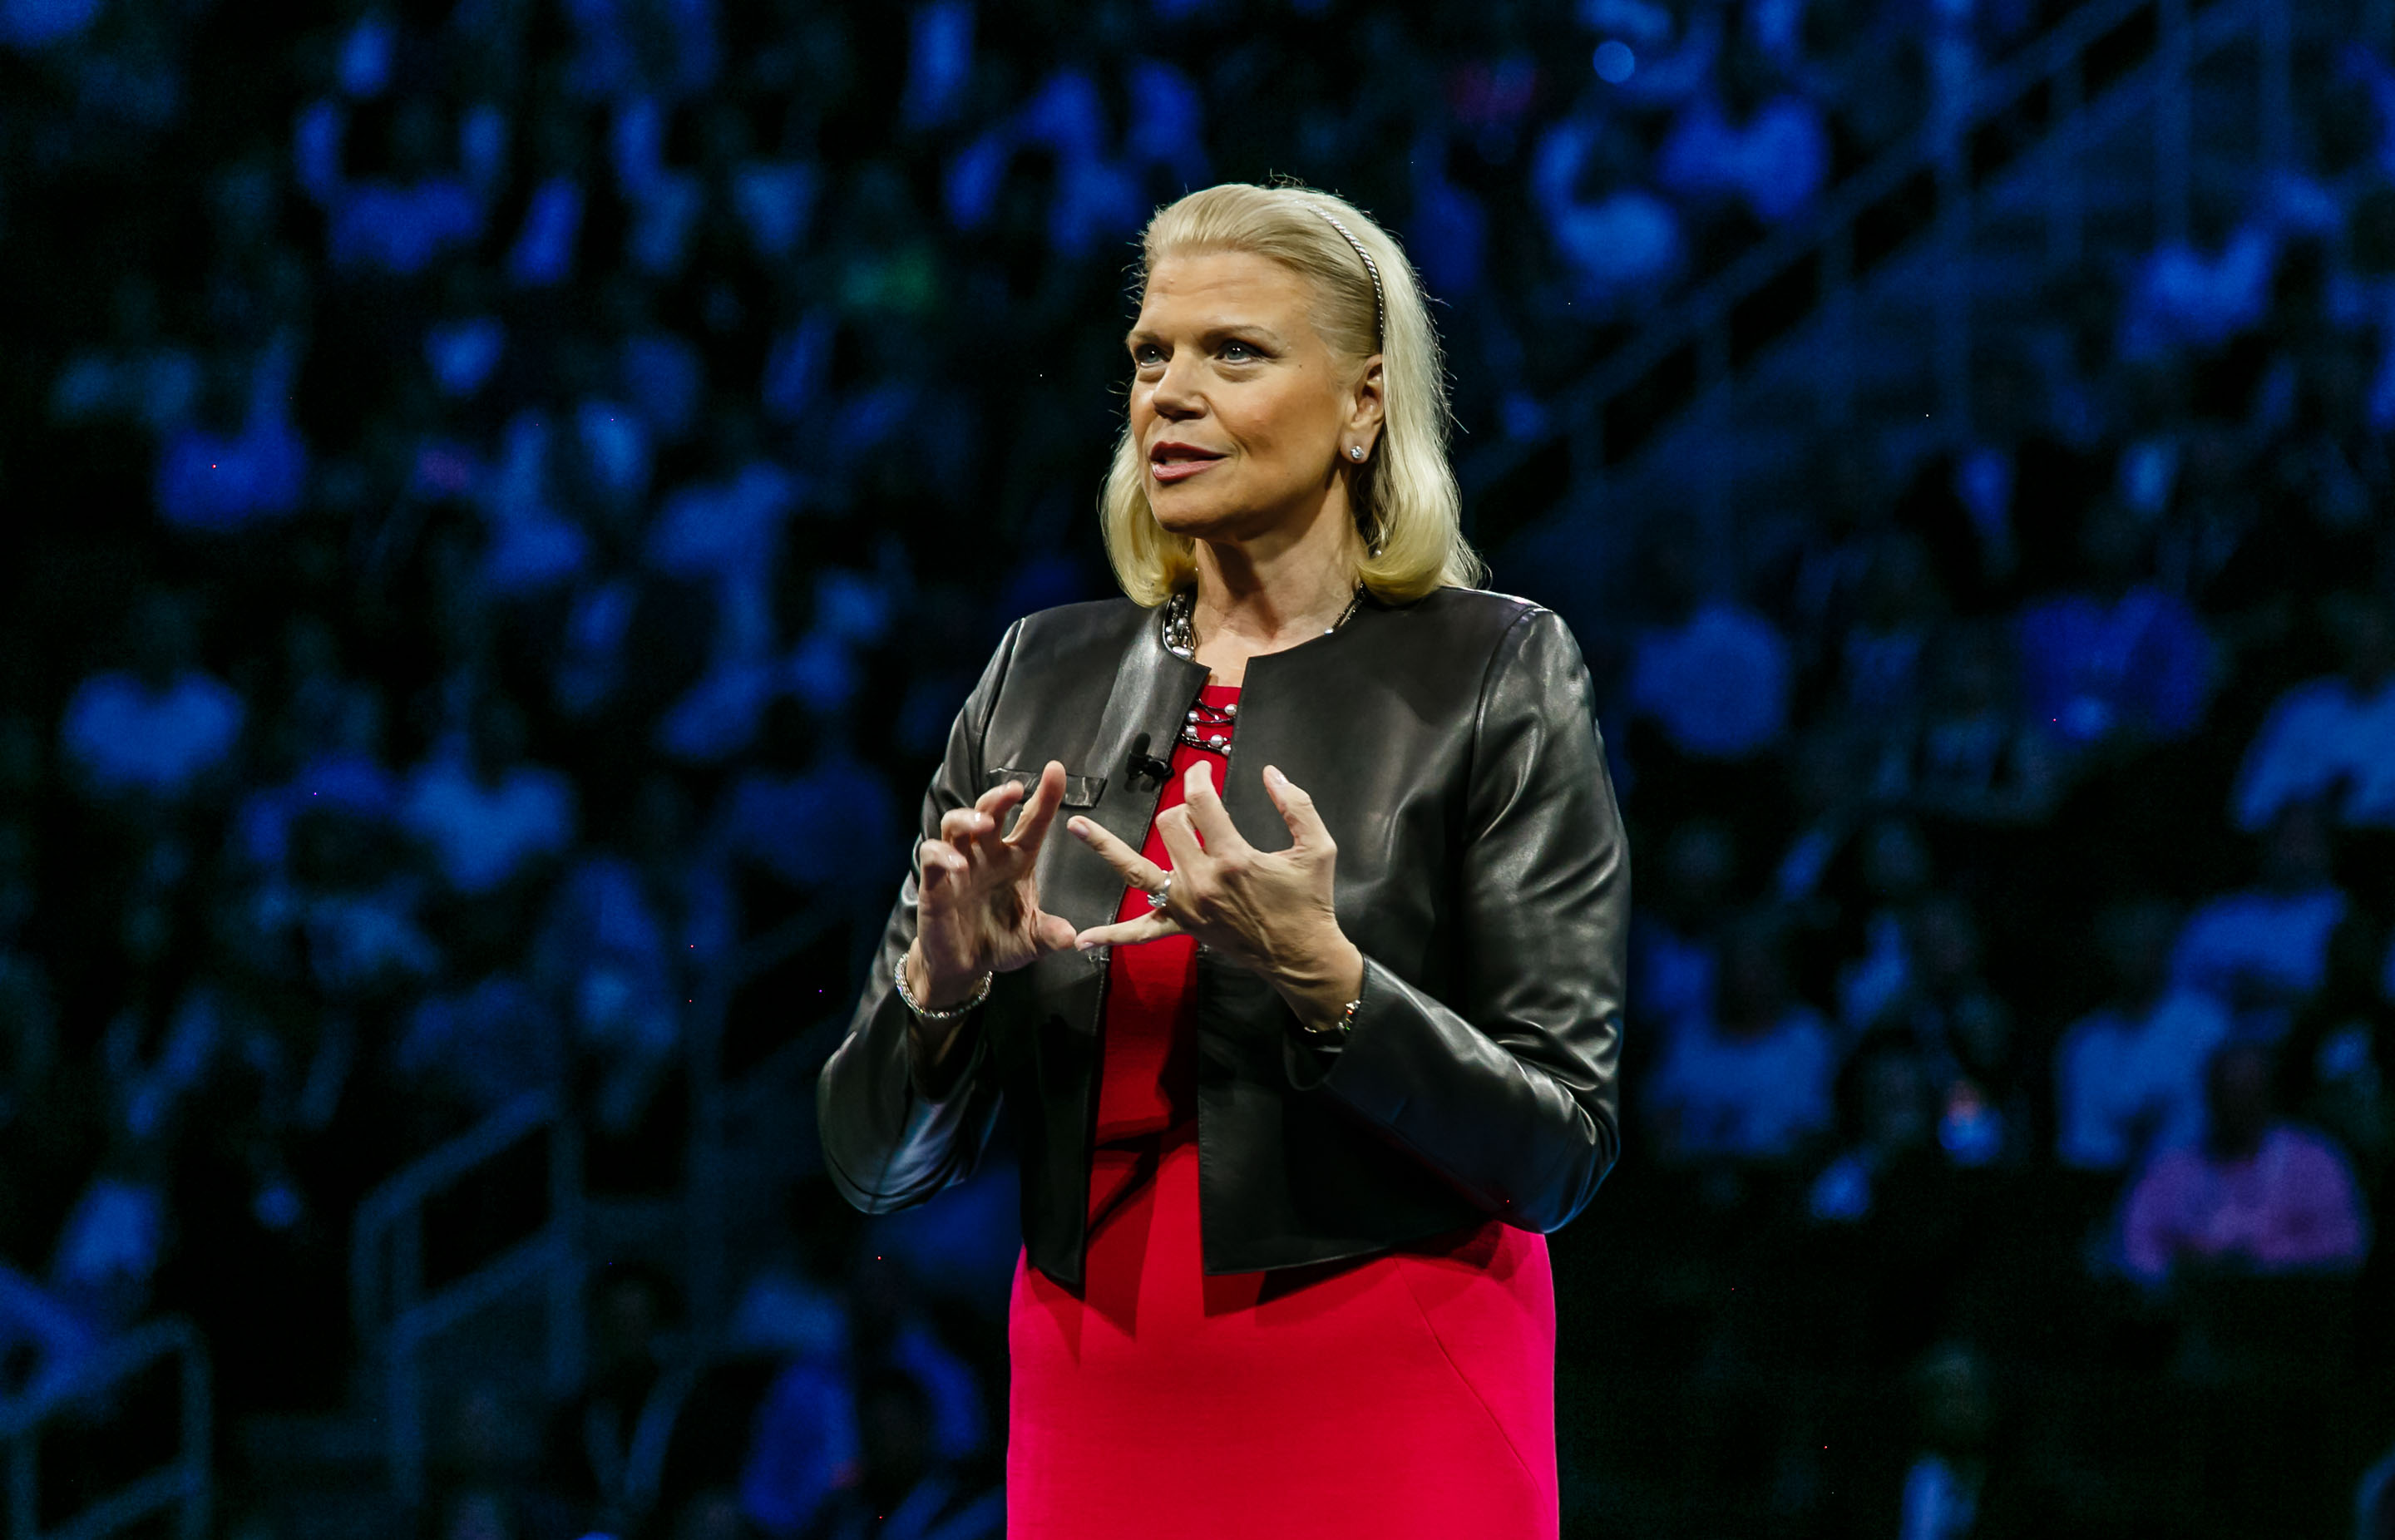 20161026131109 7858 IBM WOW 2016 GINNI ROMETTY KEYNOTE GINNI ROMETTI